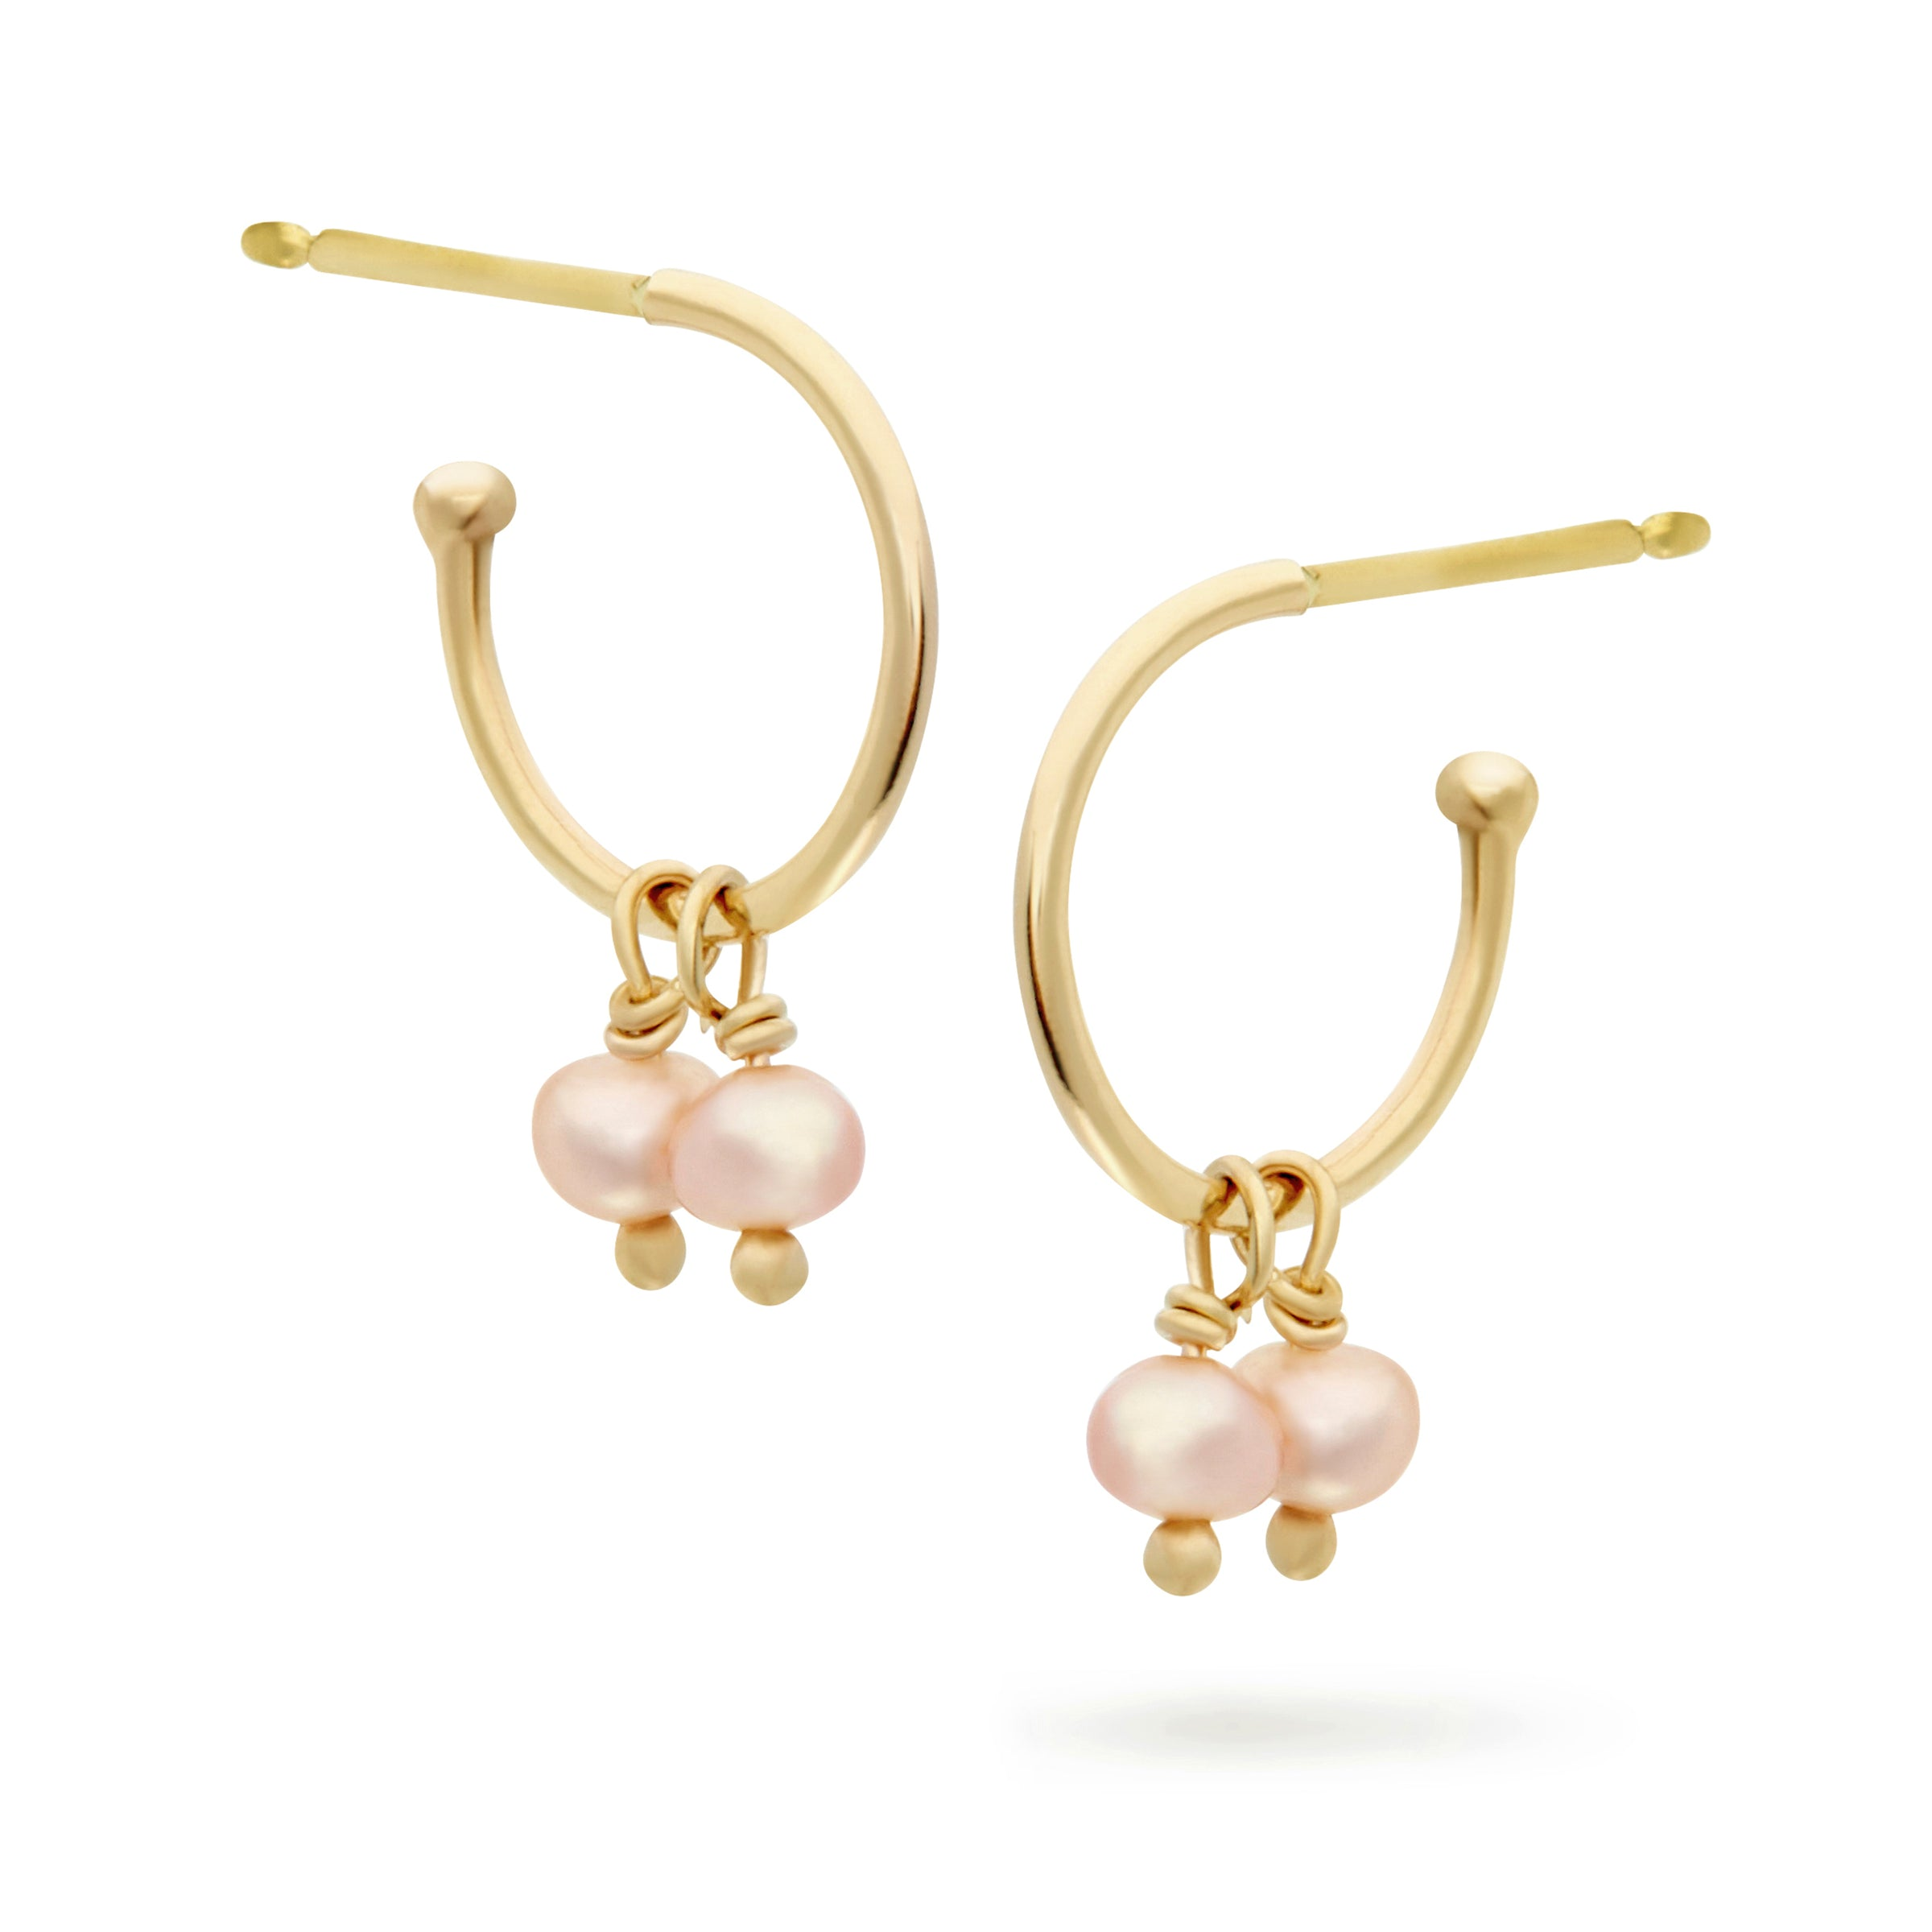 Gold and Pearl Sleeper Earrings by Luke Rose